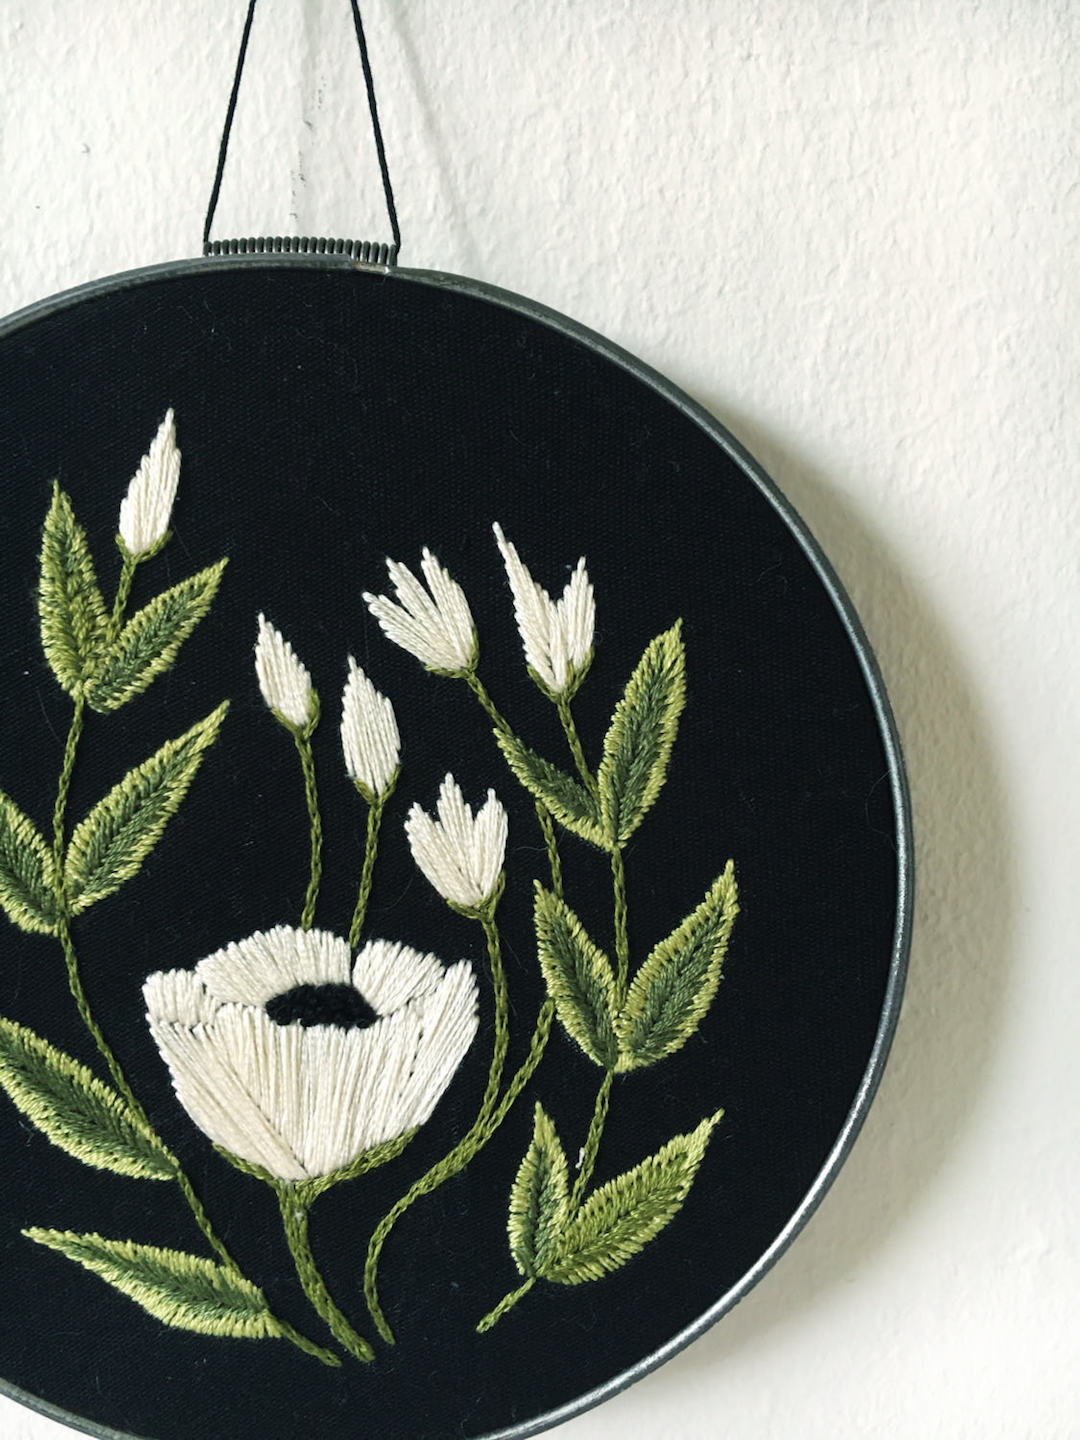 Embroidered hoop art by Tusk and Cardinal